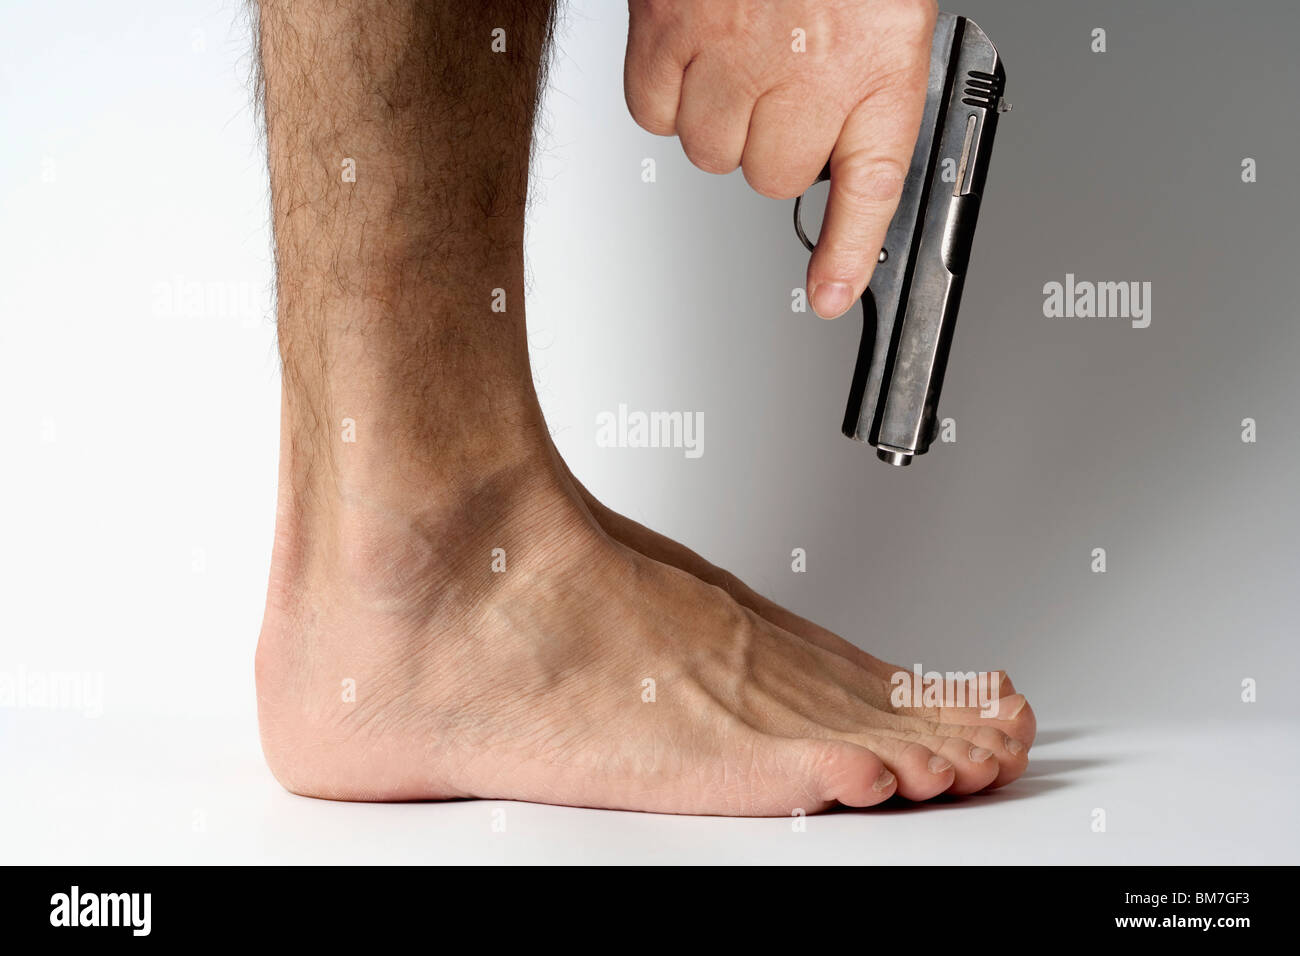 Shoot yourself in the foot - Stock Image